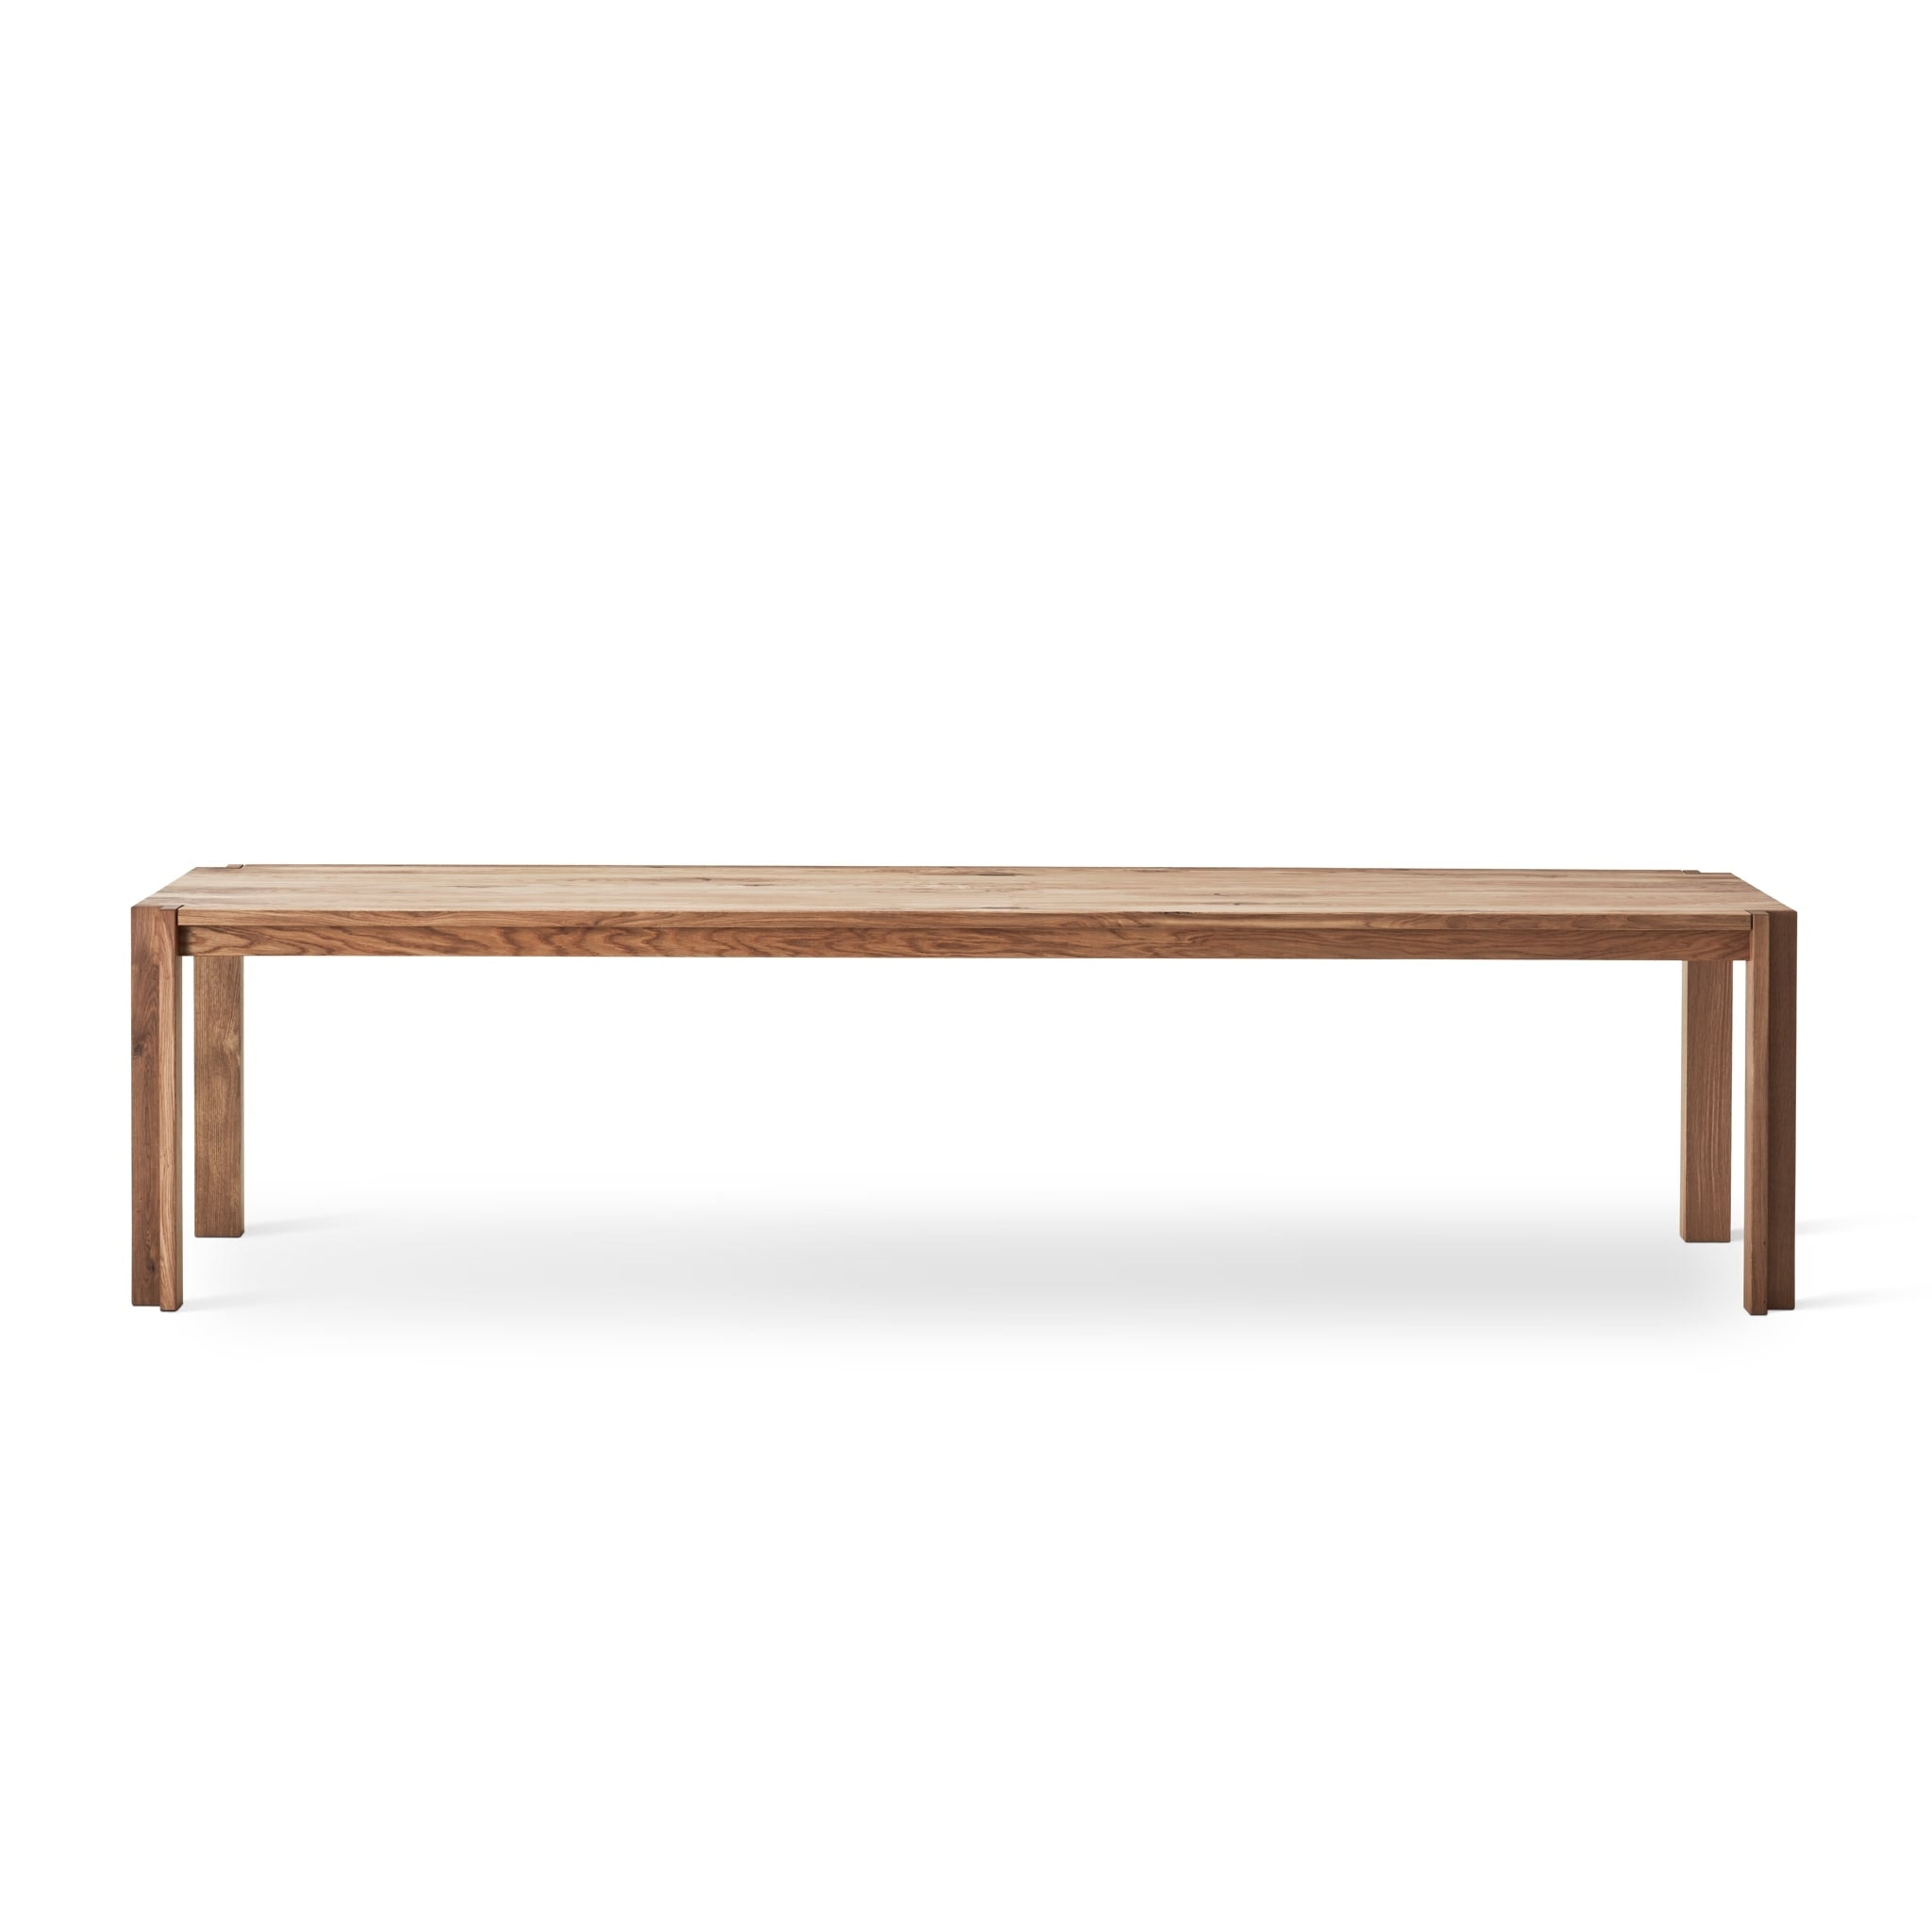 Jeppe Utzon Table by Dk3